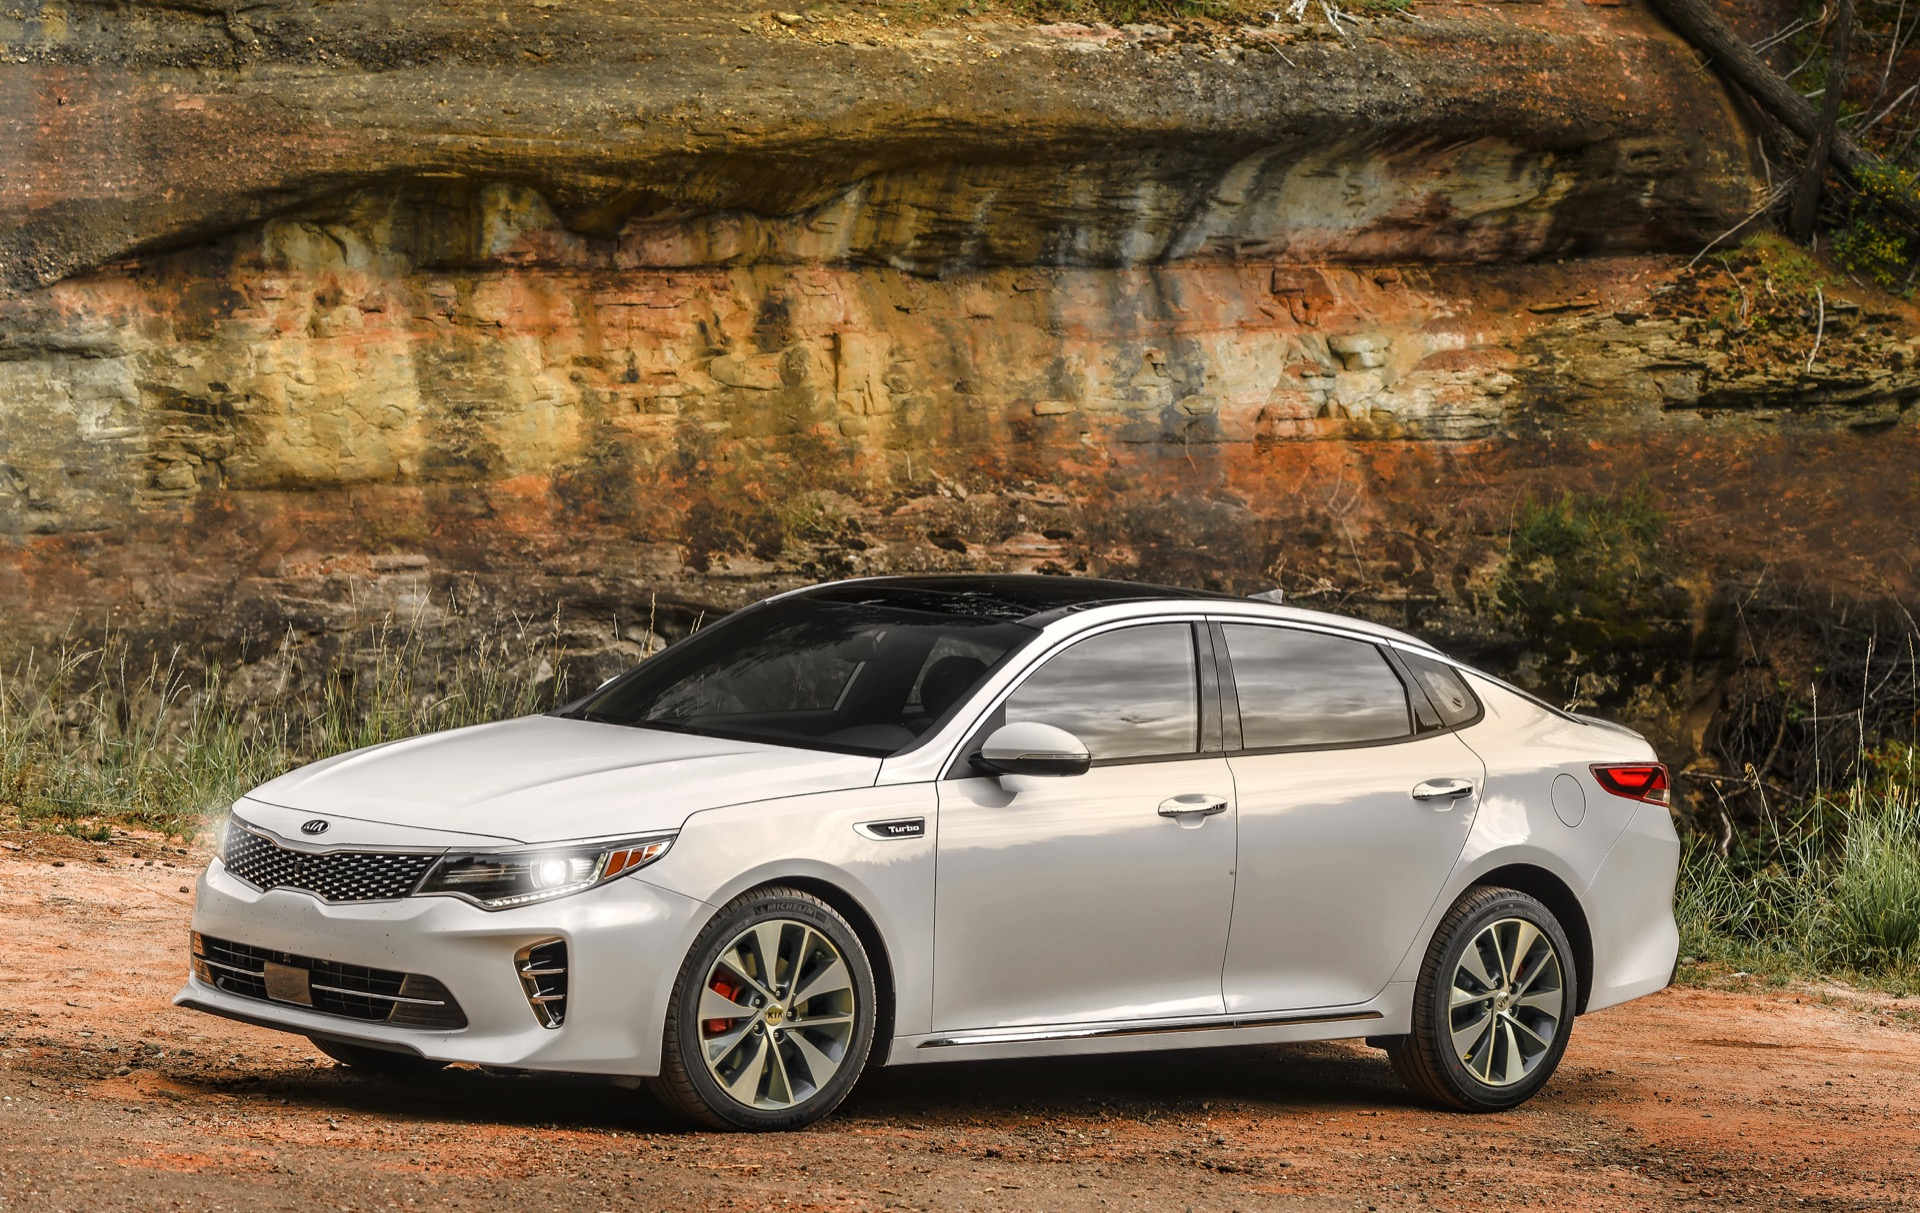 2016 kia optima safety review and crash test ratings   the car